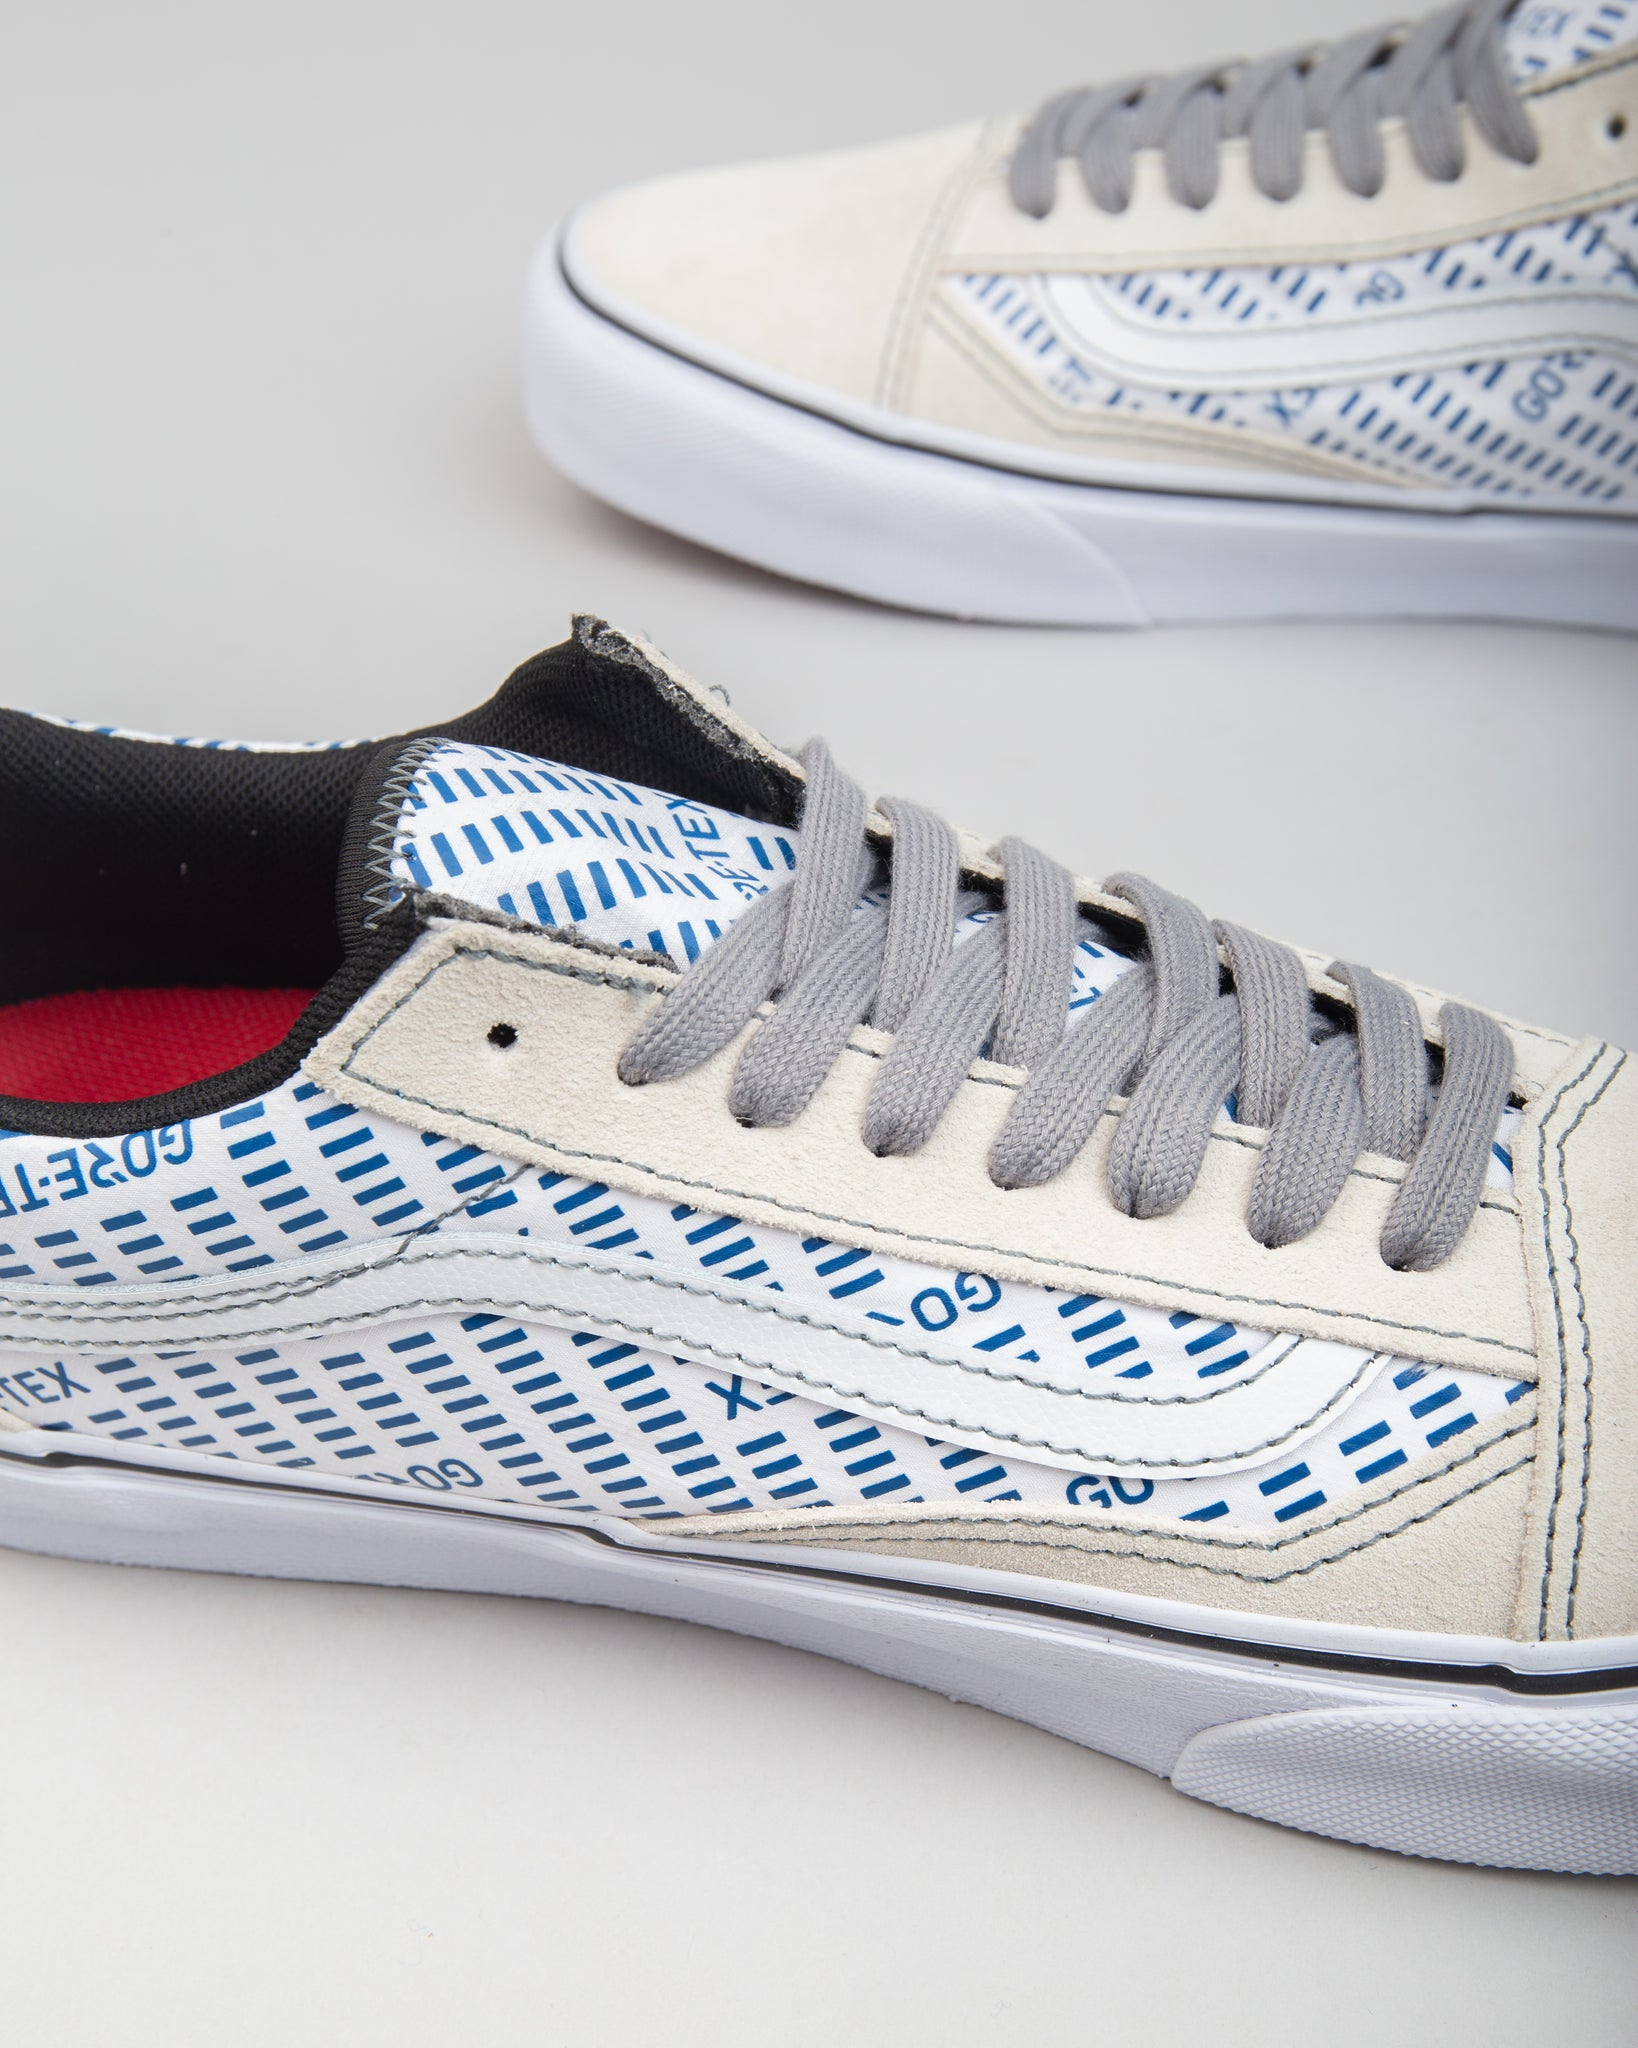 GORE-TEX Old Skool White/Blue